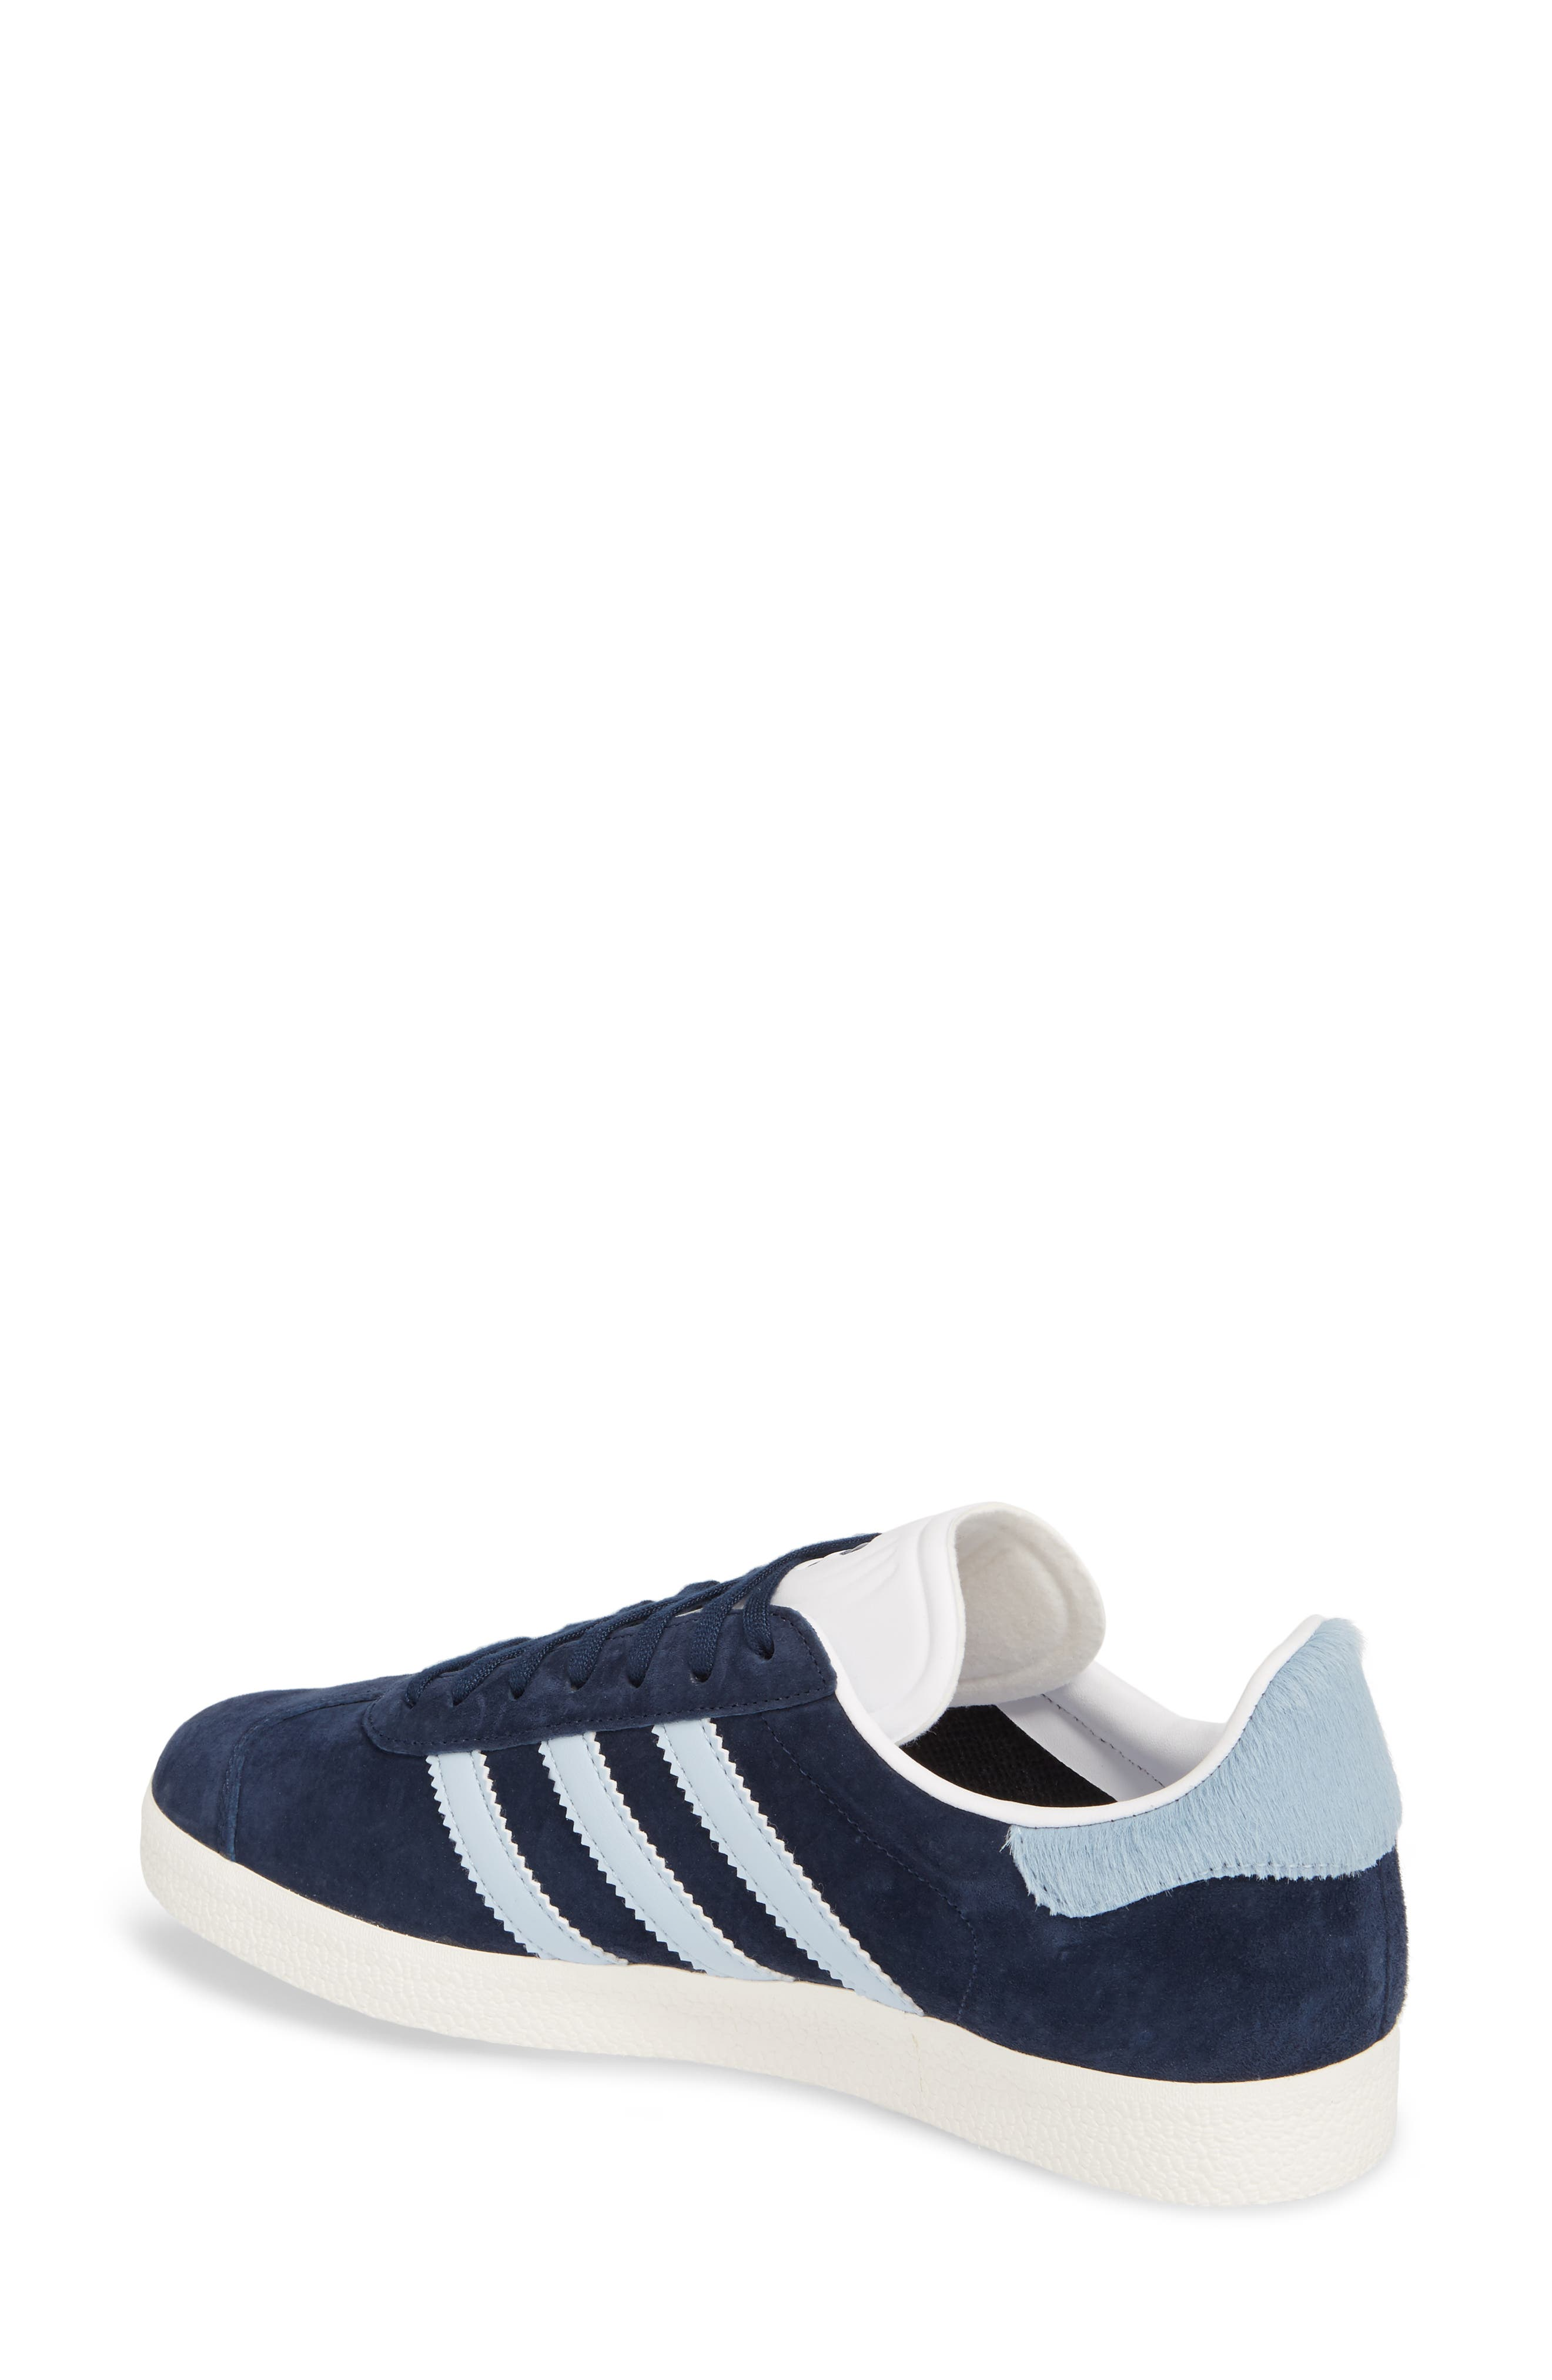 Gazelle Sneaker,                             Alternate thumbnail 2, color,                             Navy/ Easy Blue/ White